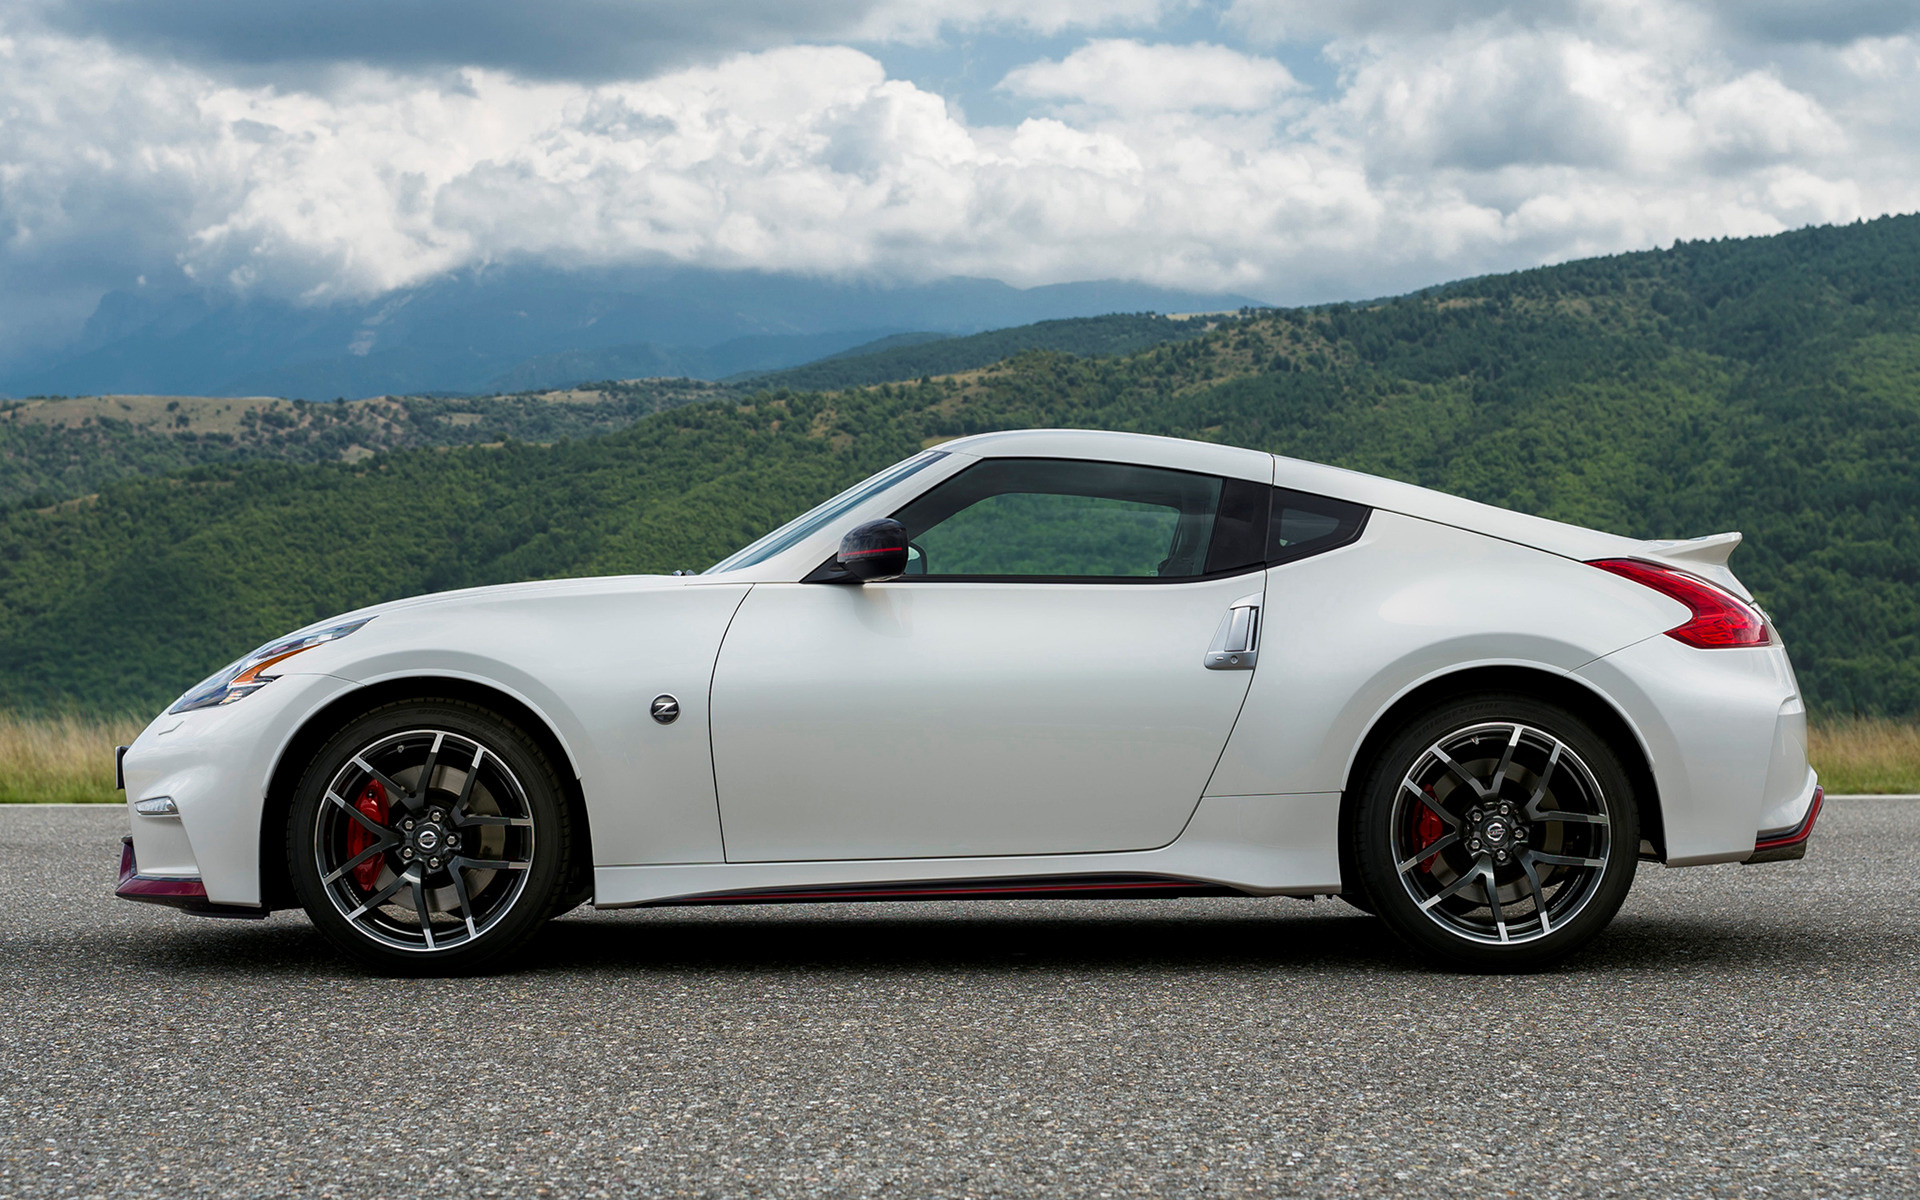 Nissan 370Z Nismo 2014 Wallpapers and HD Images   Car Pixel 1920x1200